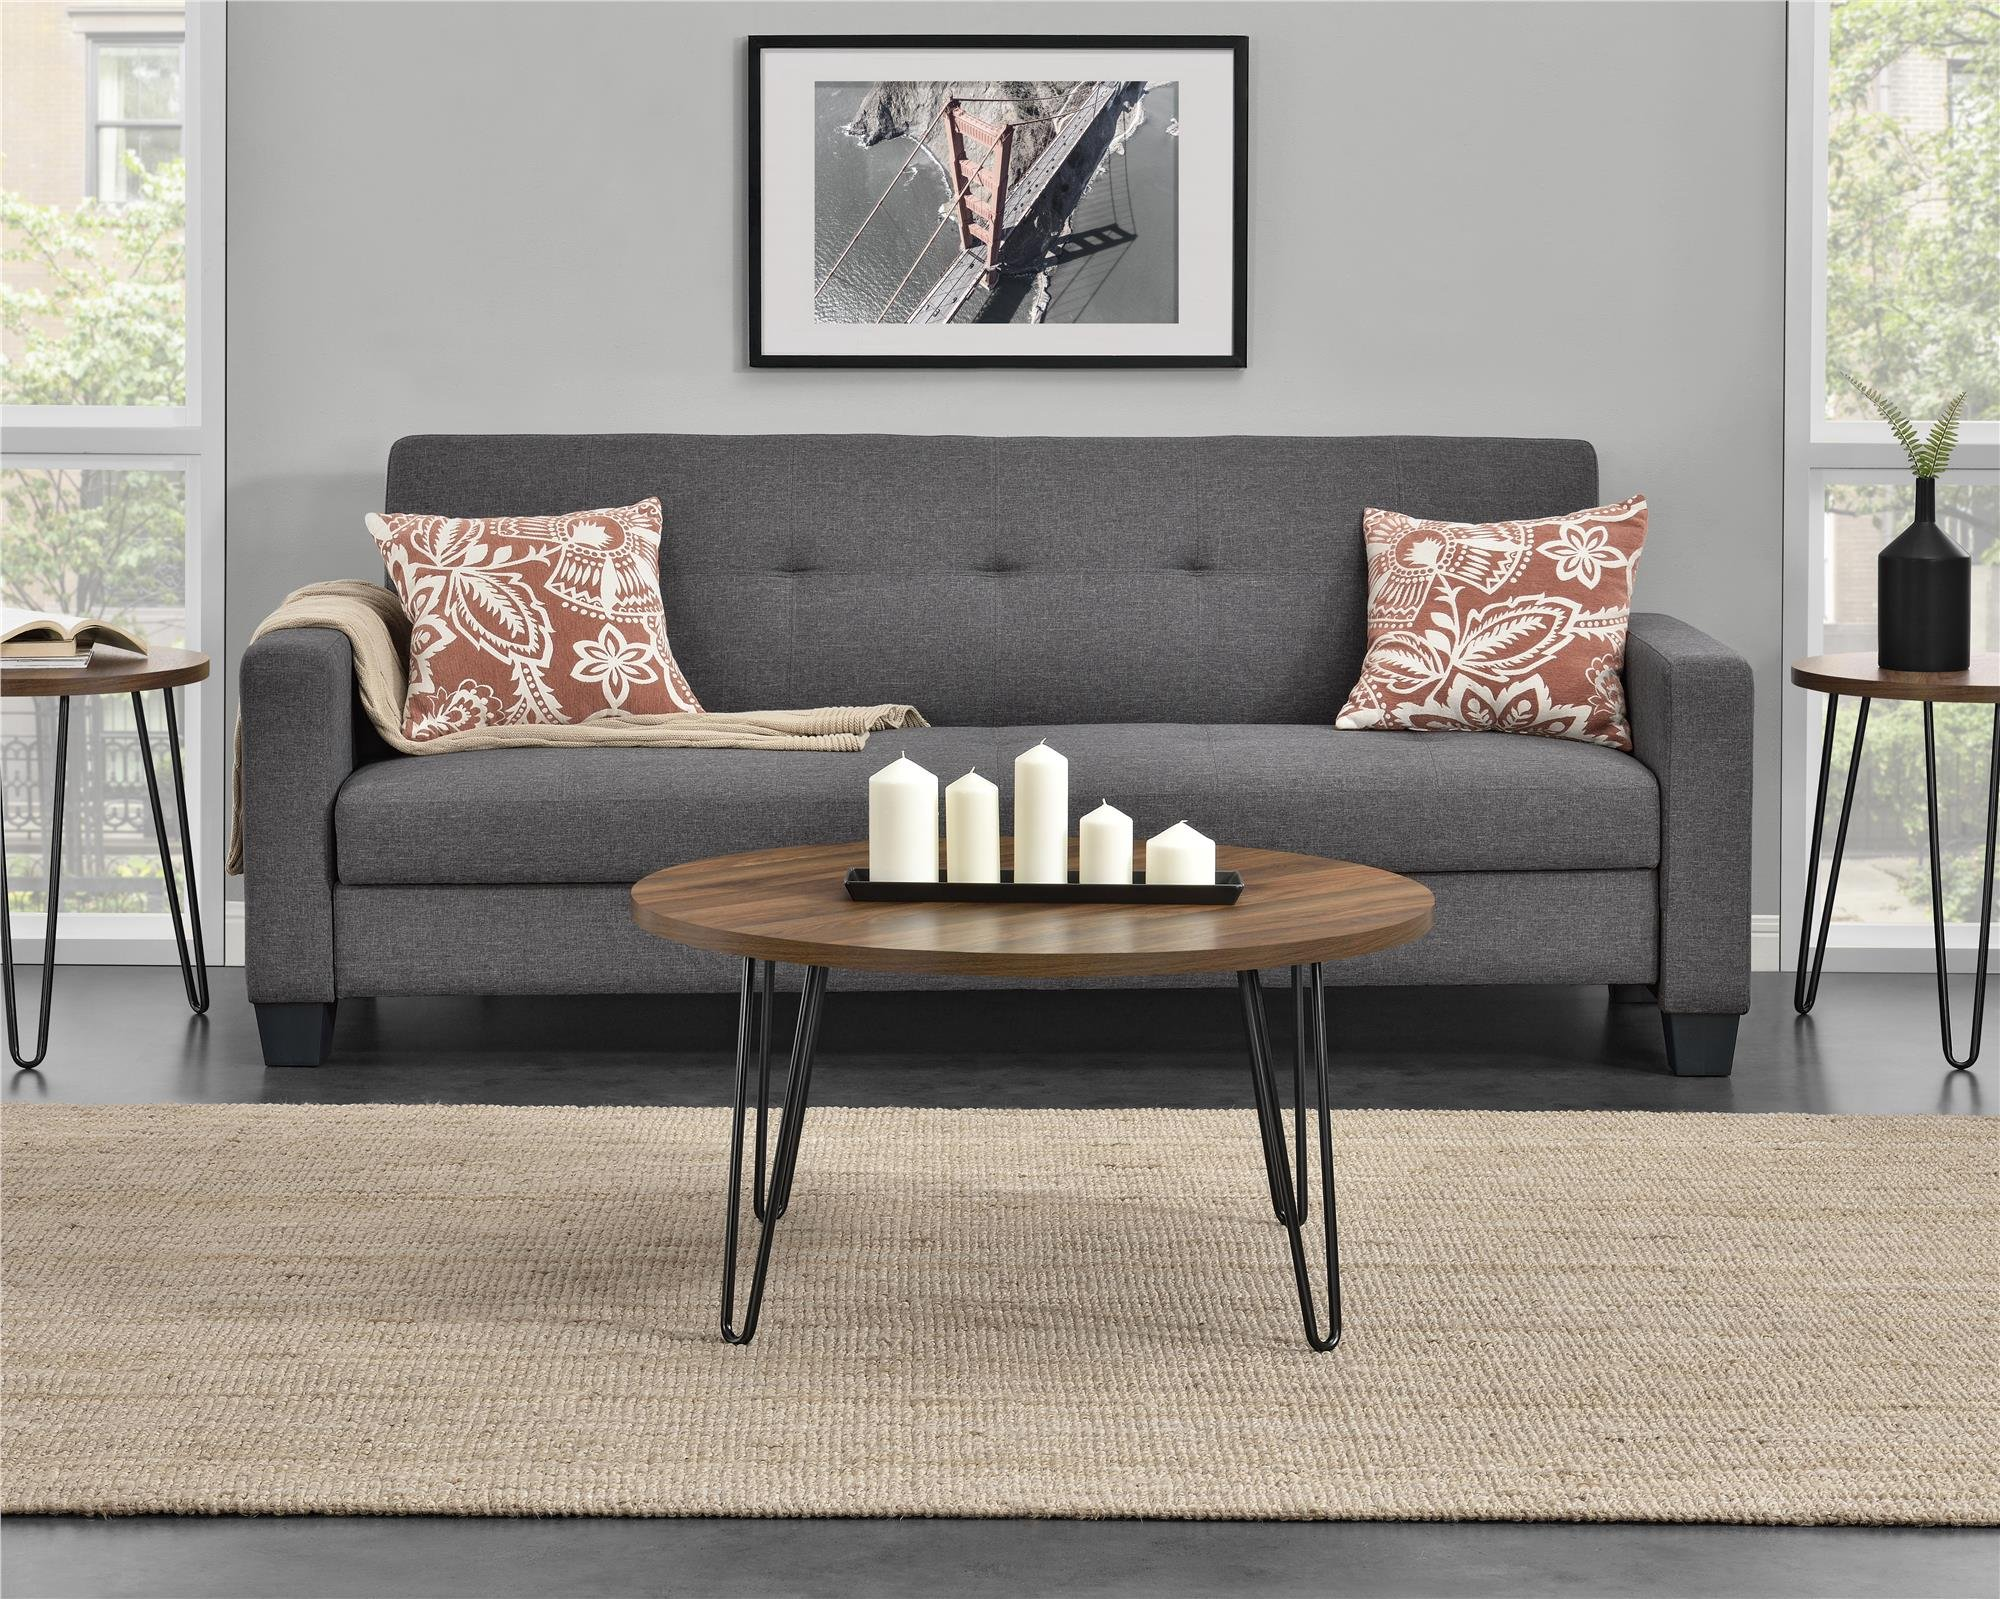 Ameriwood Home 3615222COM Owen Retro Coffee Table, Walnut by Ameriwood Home (Image #2)